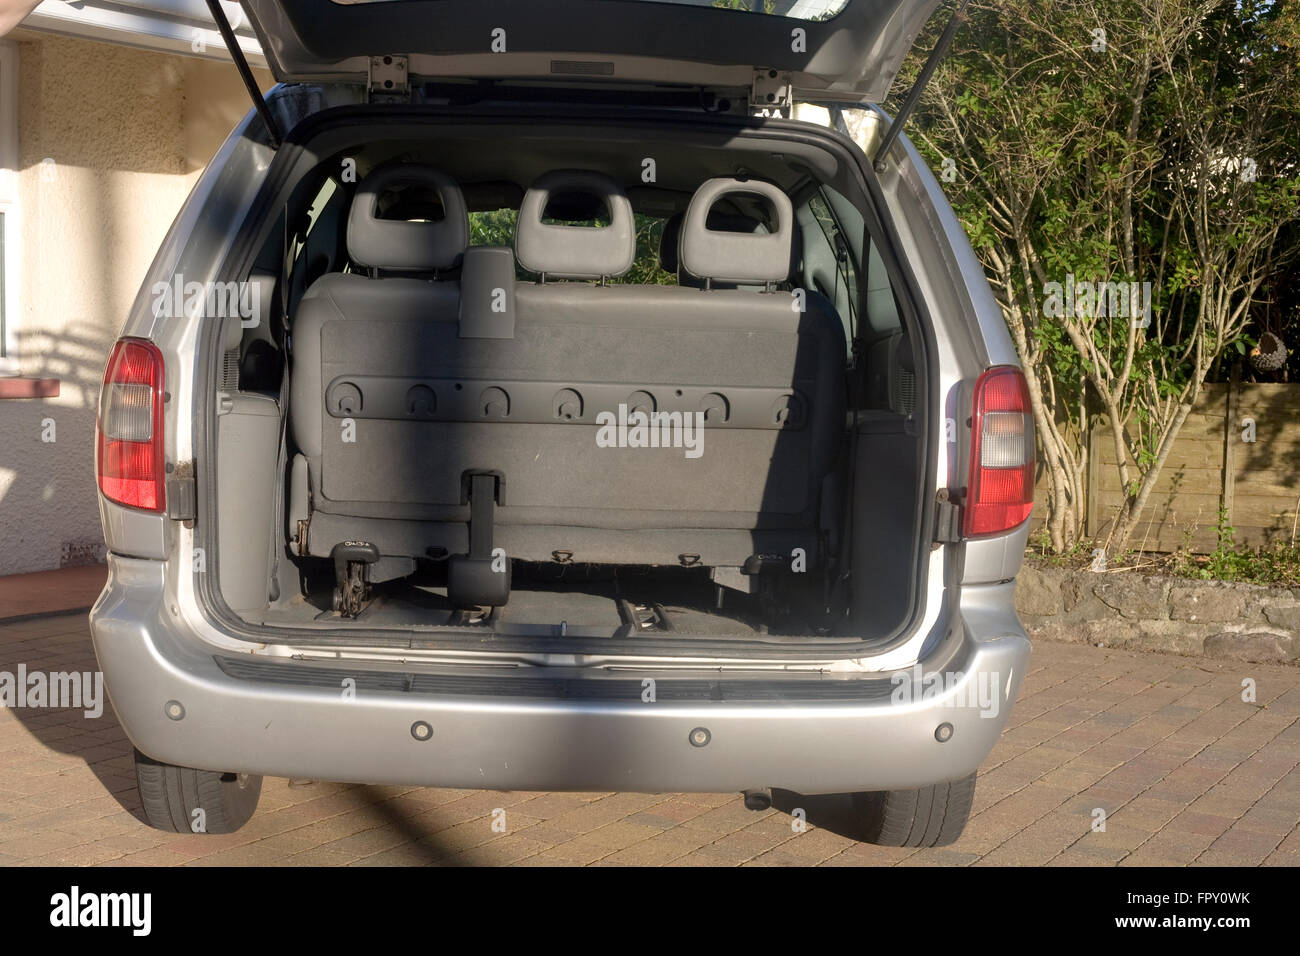 Open tailgate of Chrysler Grand voyager shows boot with luggage space and rearmost seats with headrests - Stock Image